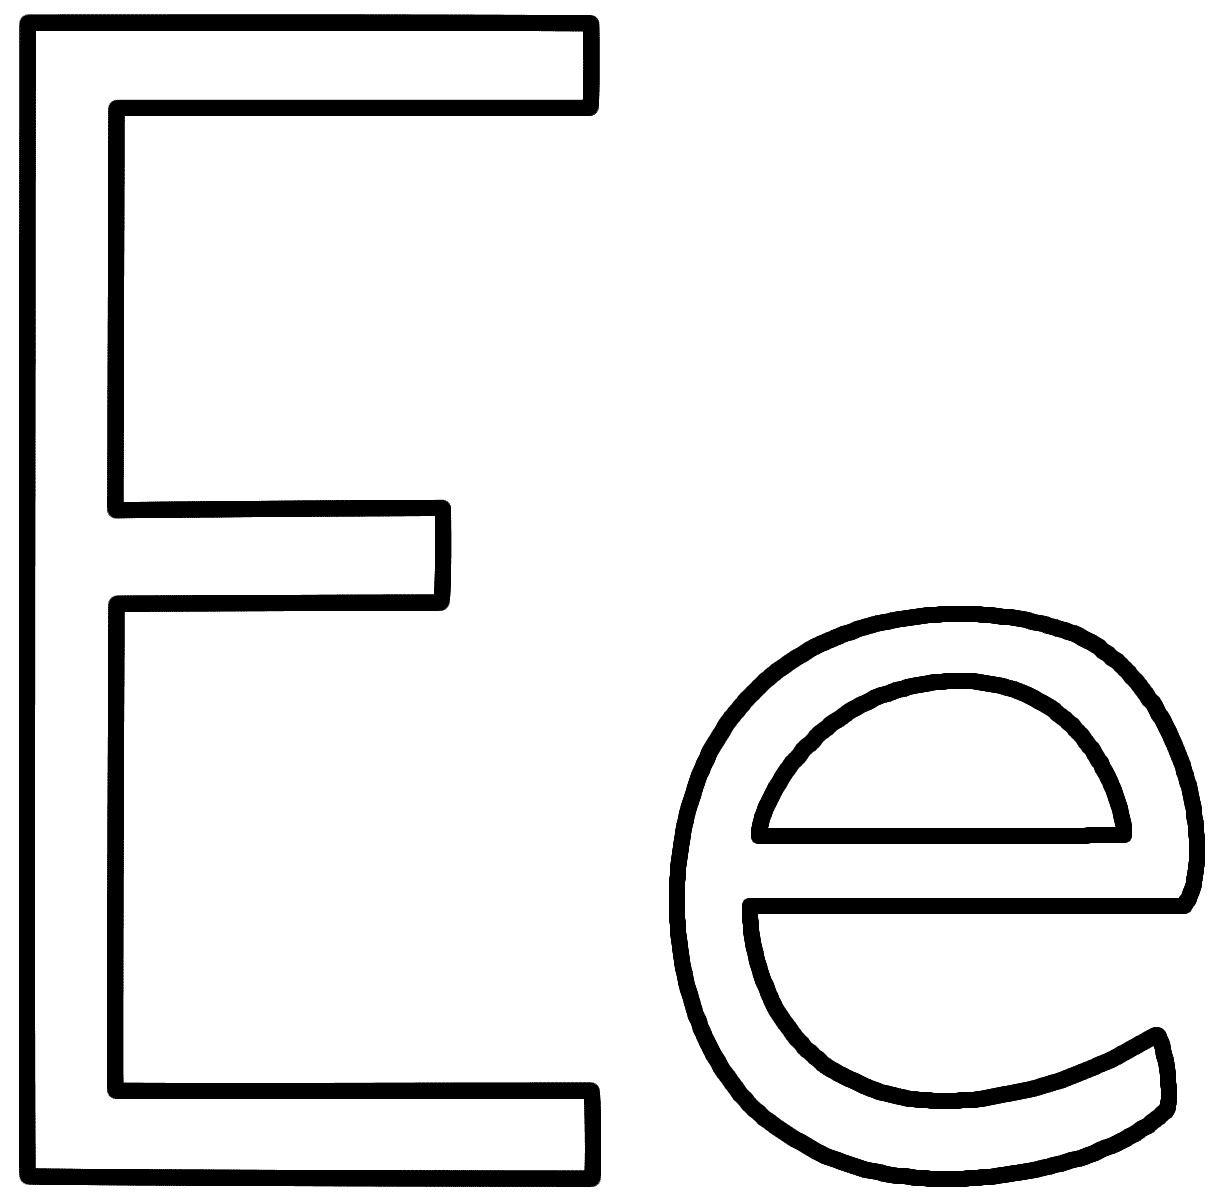 e for coloring coloring page adults letter e alphabet coloring pages e for coloring